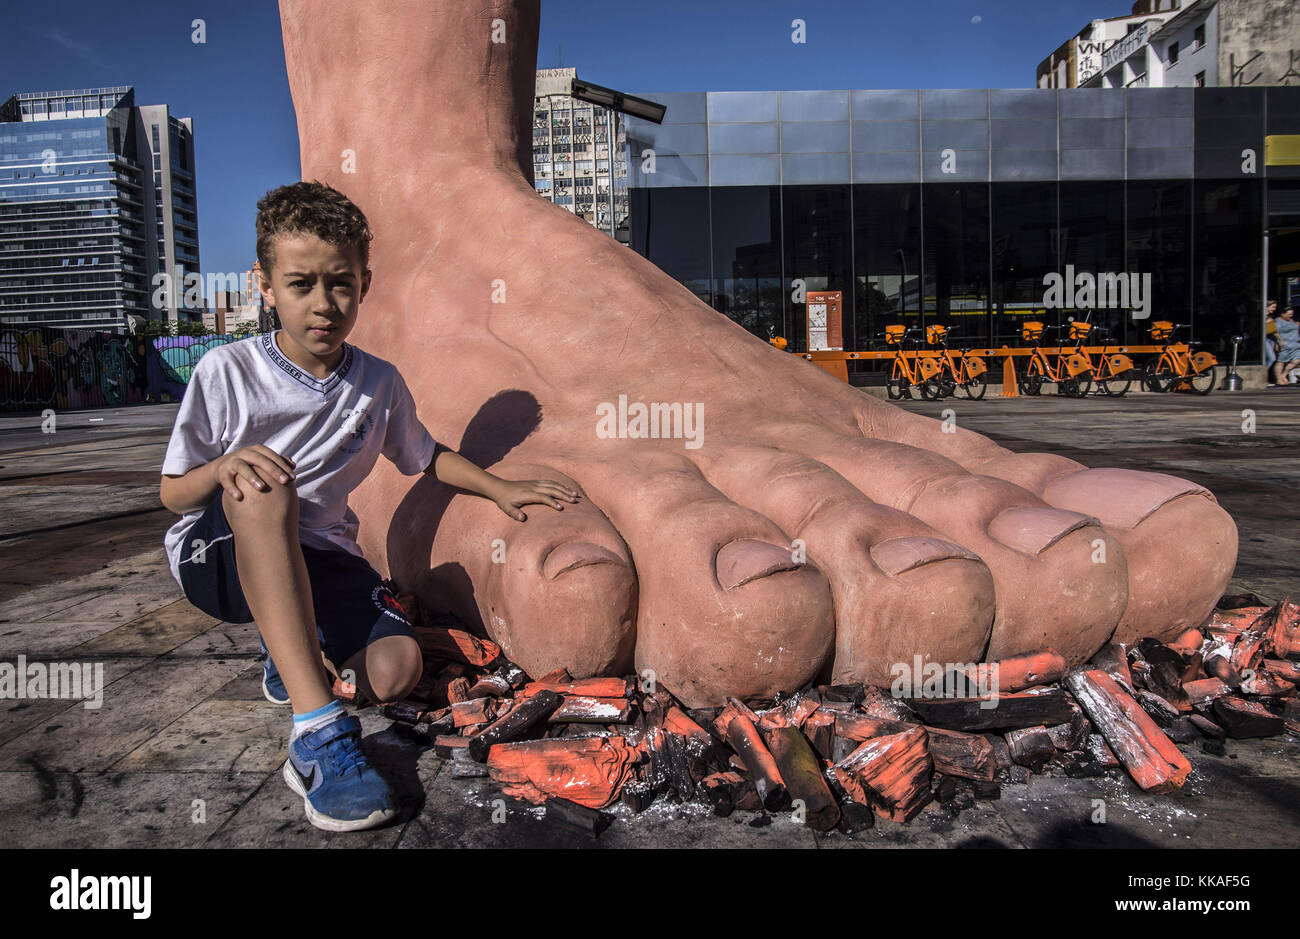 Sao Paulo, Brazil. 29th November, 2017. ARTE-SP - Sculpture of a foot, by the artist Eduardo Srur, installed in - Stock Image